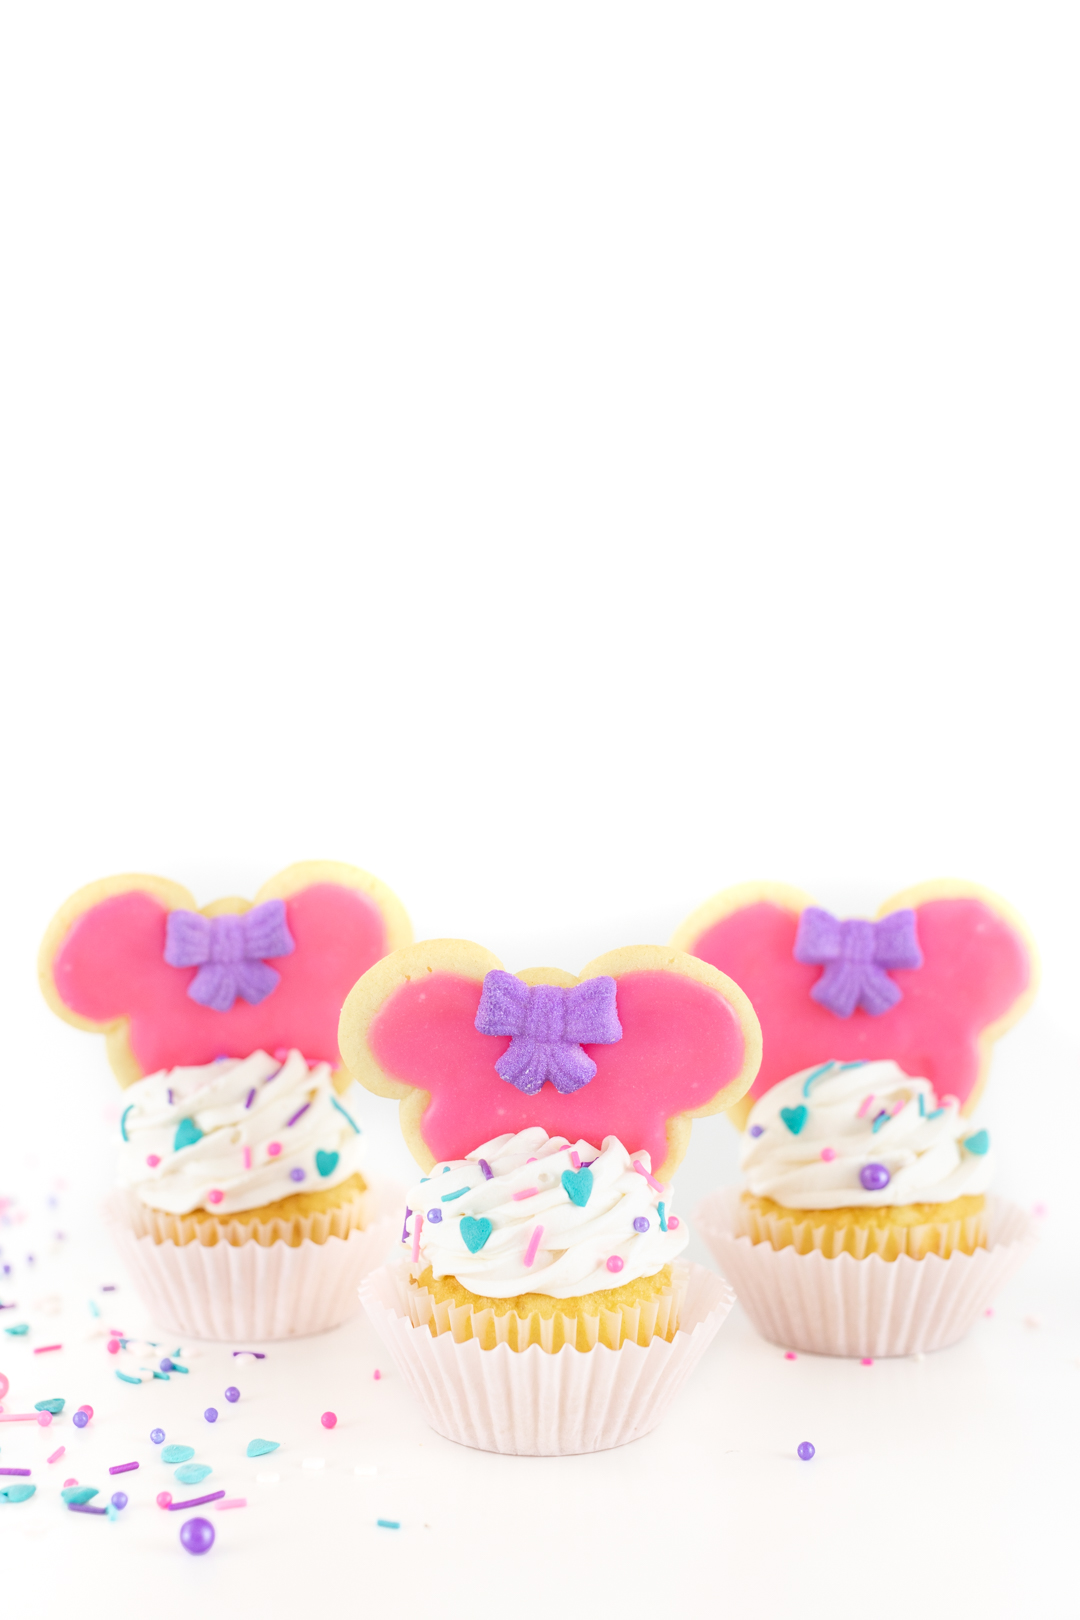 Adorable minnie mouse cookies placed on top of cupcakes